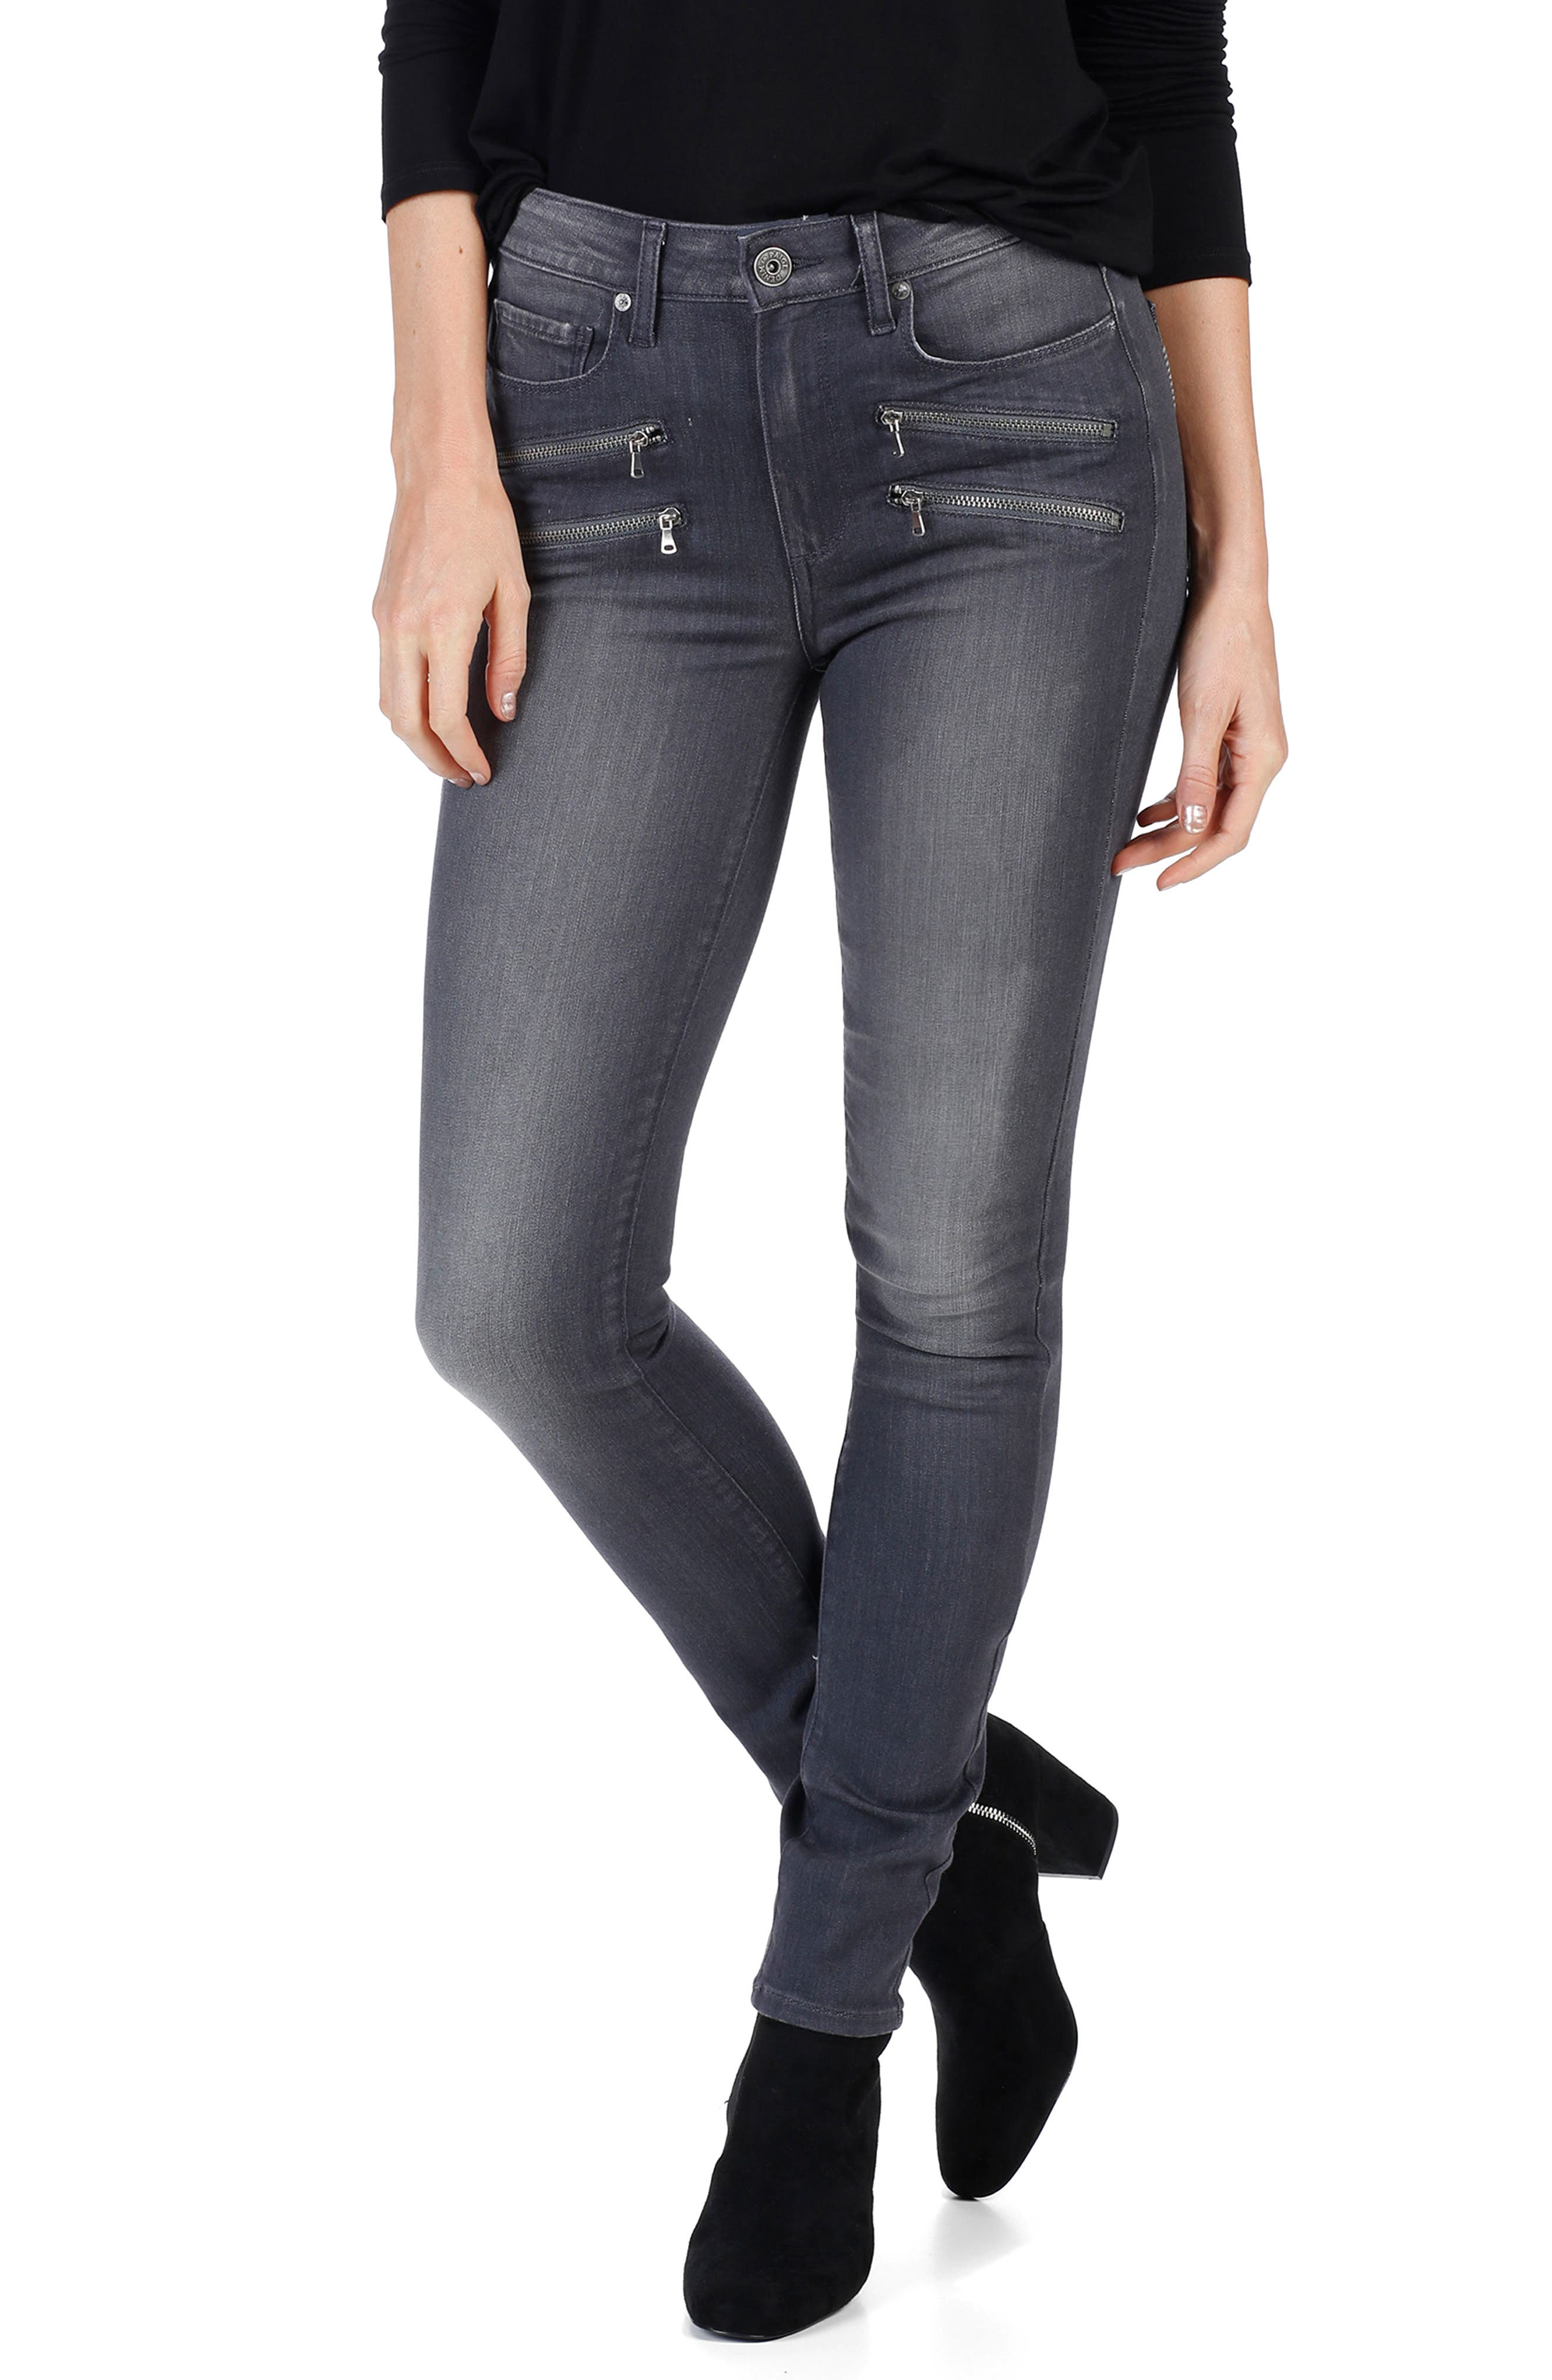 Alternate Image 1 Selected - PAIGE Transcend - Edgemont High Waist Skinny Jeans (Summit Grey)